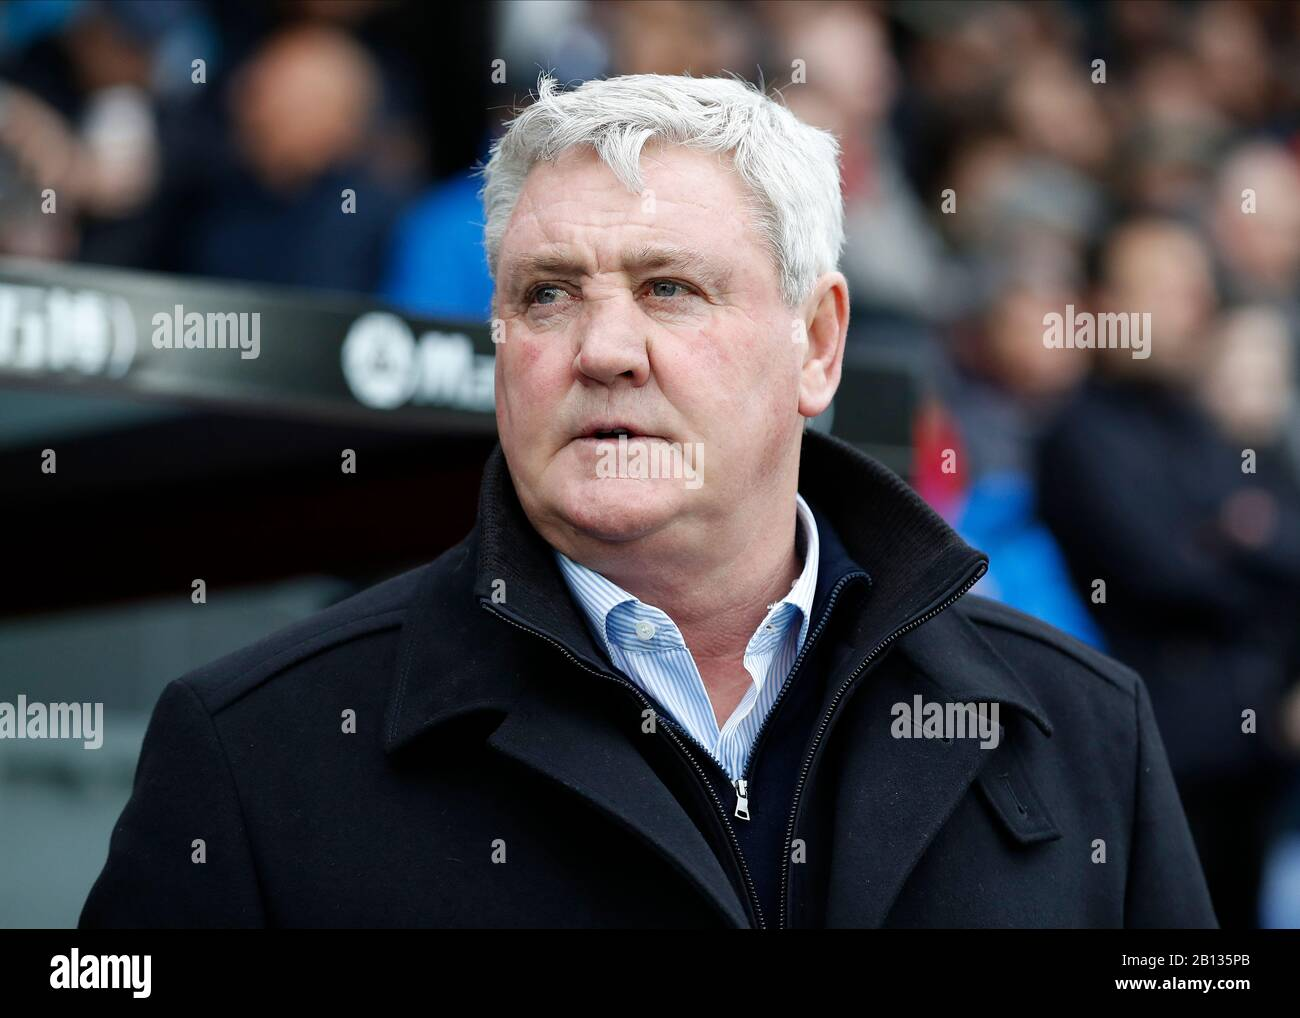 Selhurst Park, London, UK. 22nd Feb, 2020. English Premier League Football, Crystal Palace versus Newcastle United; Newcastle United Manager Steve Bruce looks on from the dugout kick off - Strictly Editorial Use Only. No use with unauthorized audio, video, data, fixture lists, club/league logos or 'live' services. Online in-match use limited to 120 images, no video emulation. No use in betting, games or single club/league/player publications Credit: Action Plus Sports/Alamy Live News Stock Photo